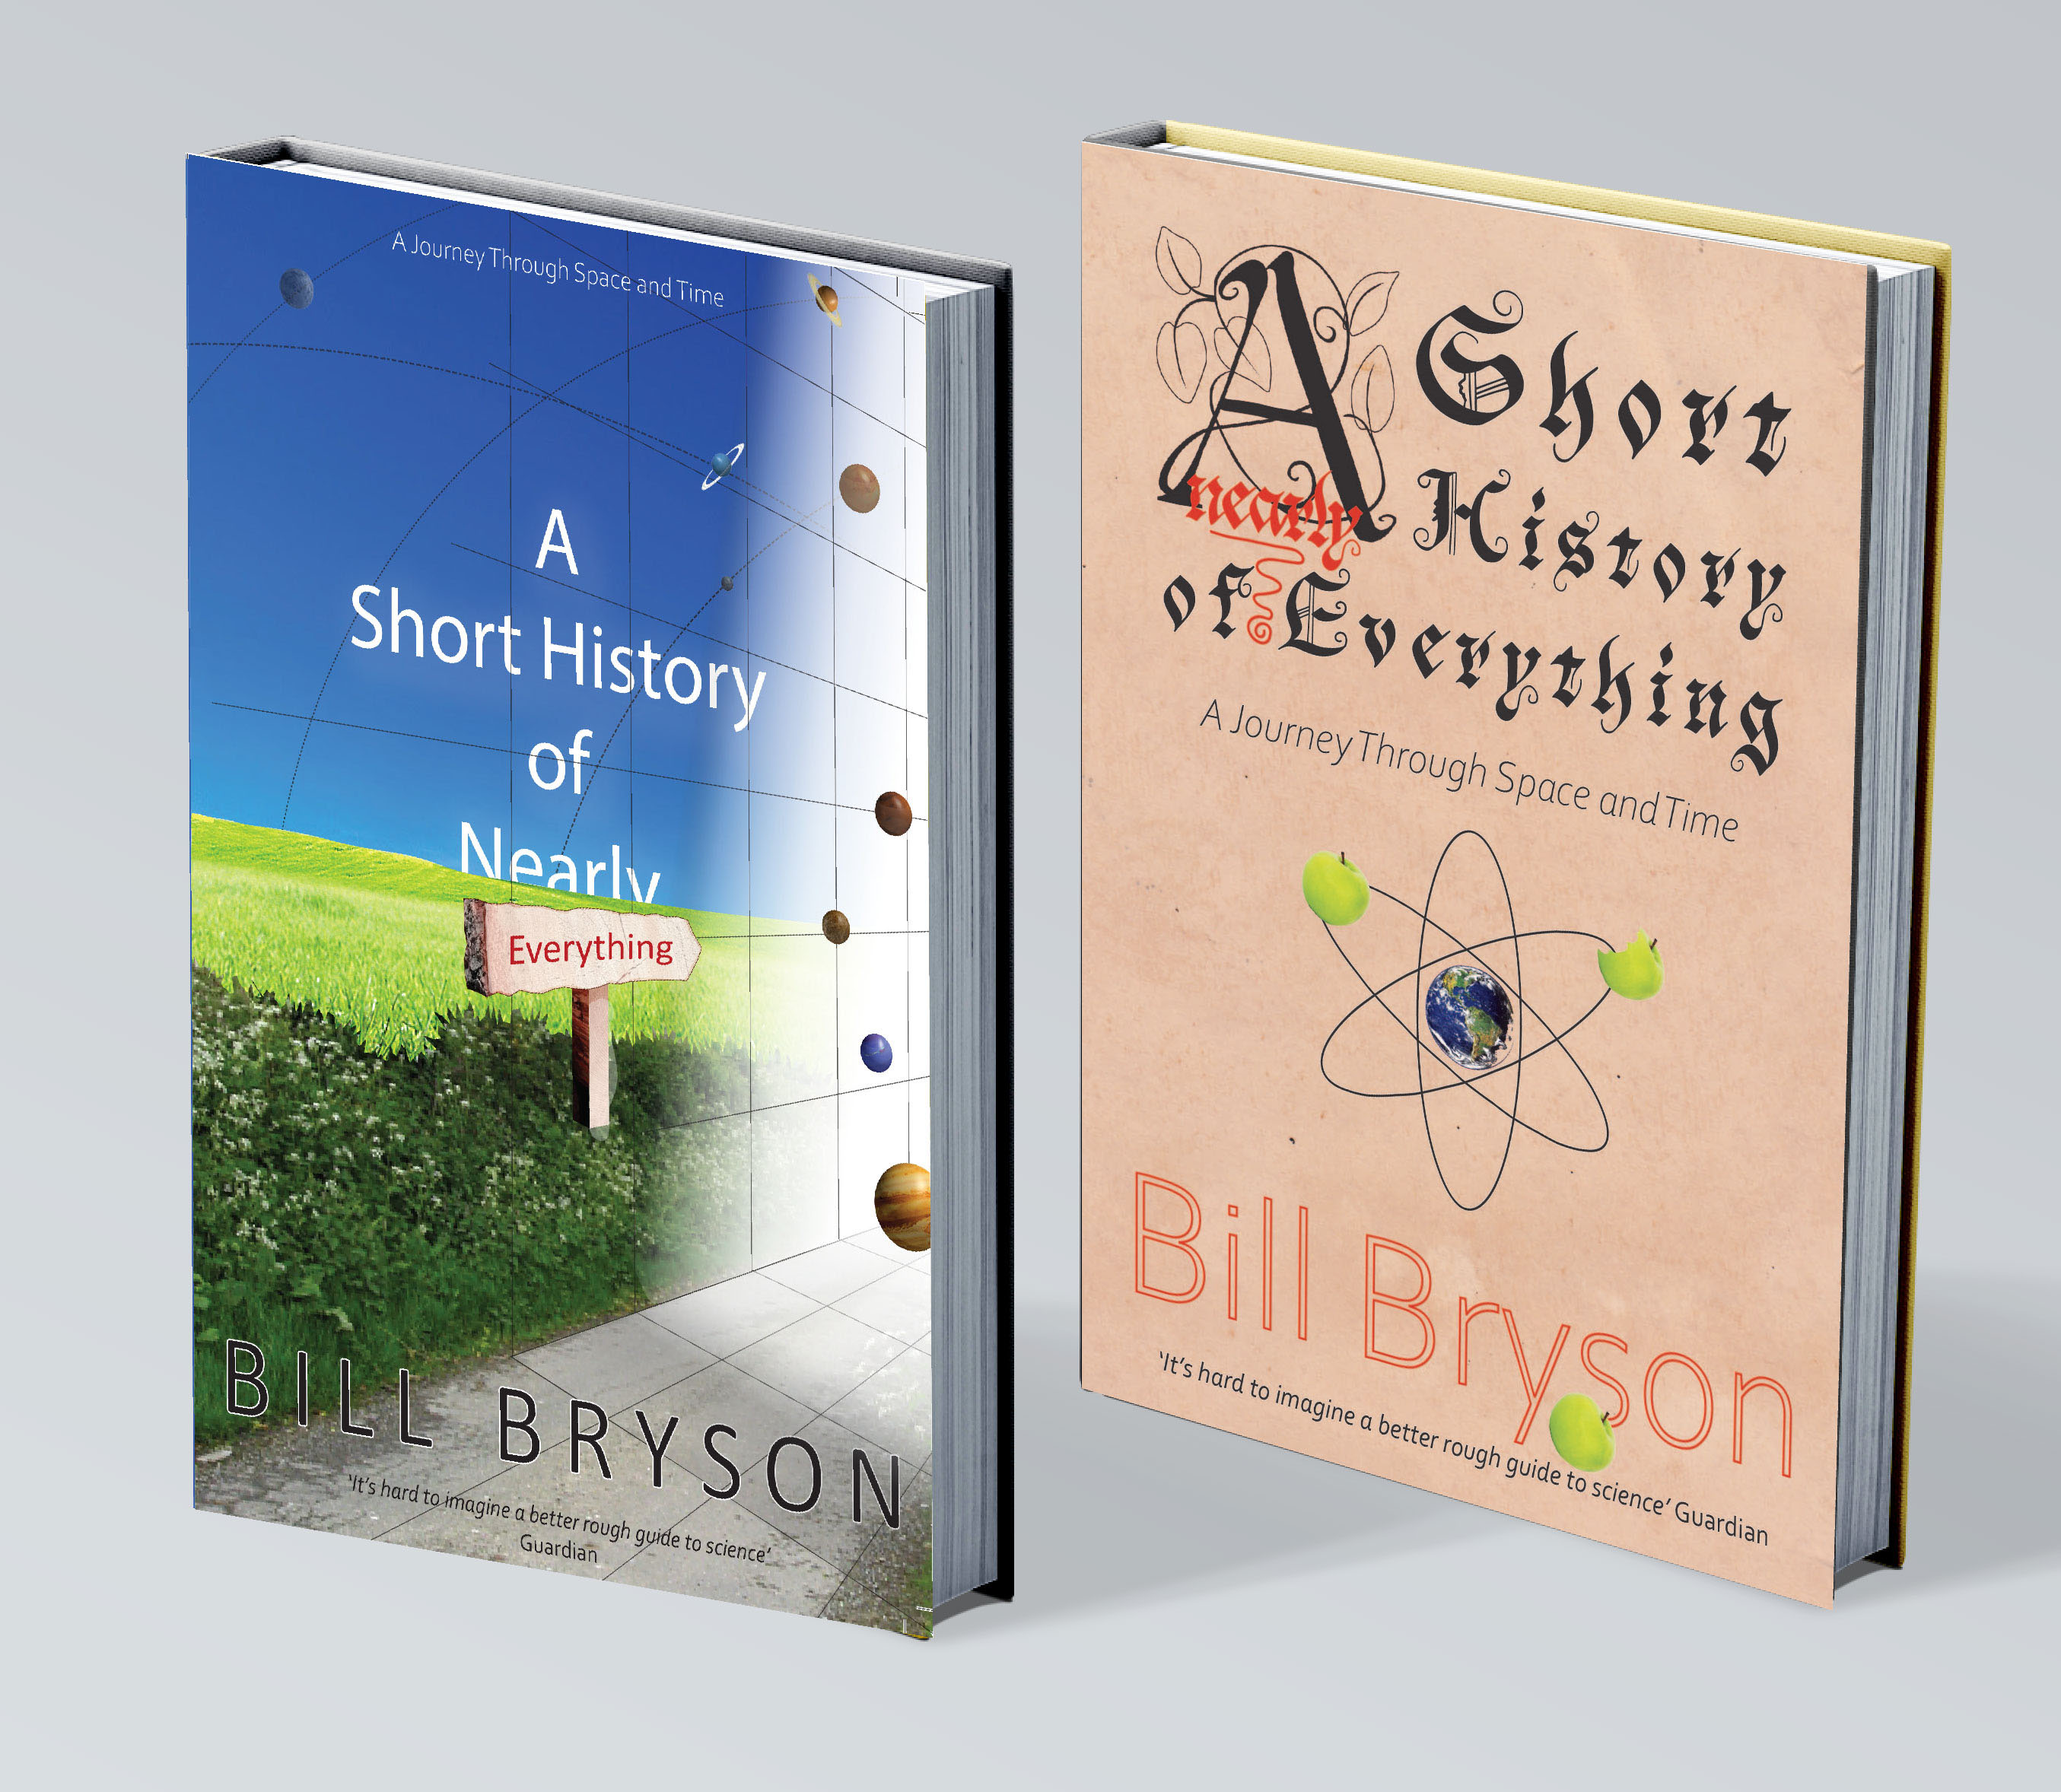 bryson book cover designs